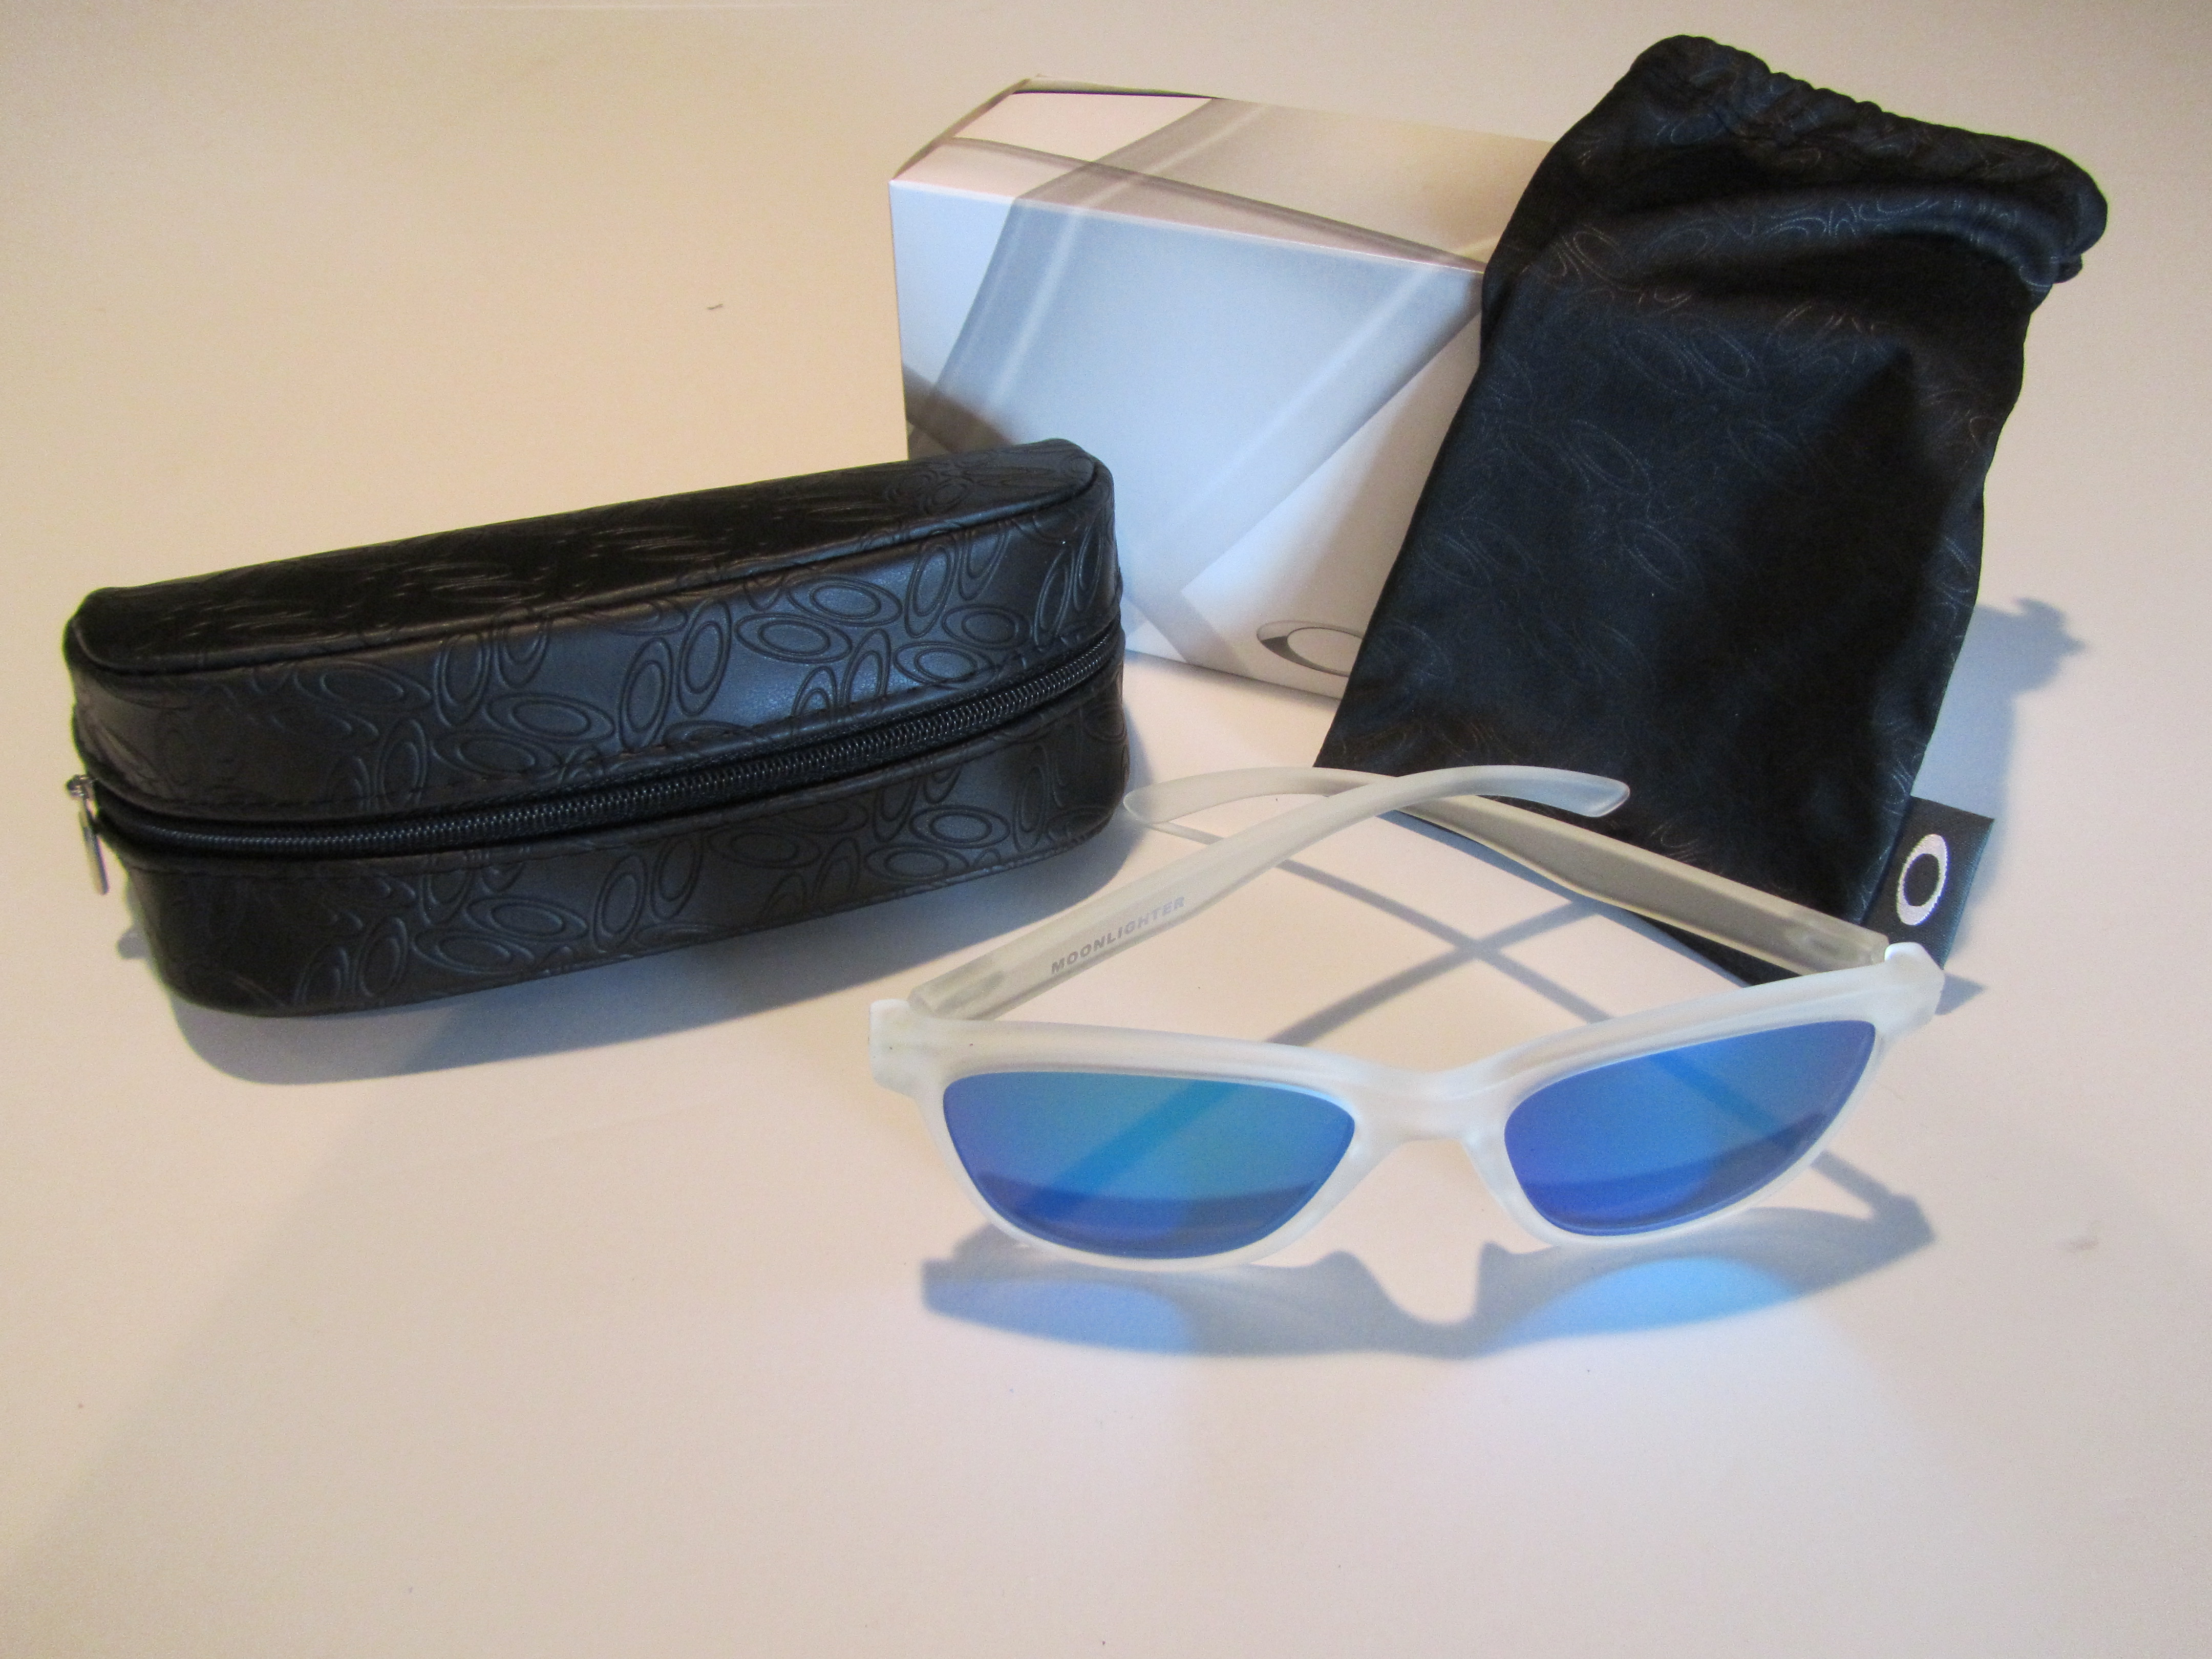 9043aad688 Details about New Oakley Moonlighter Sunglasses Frost Sapphire Iridium  OO9320-03